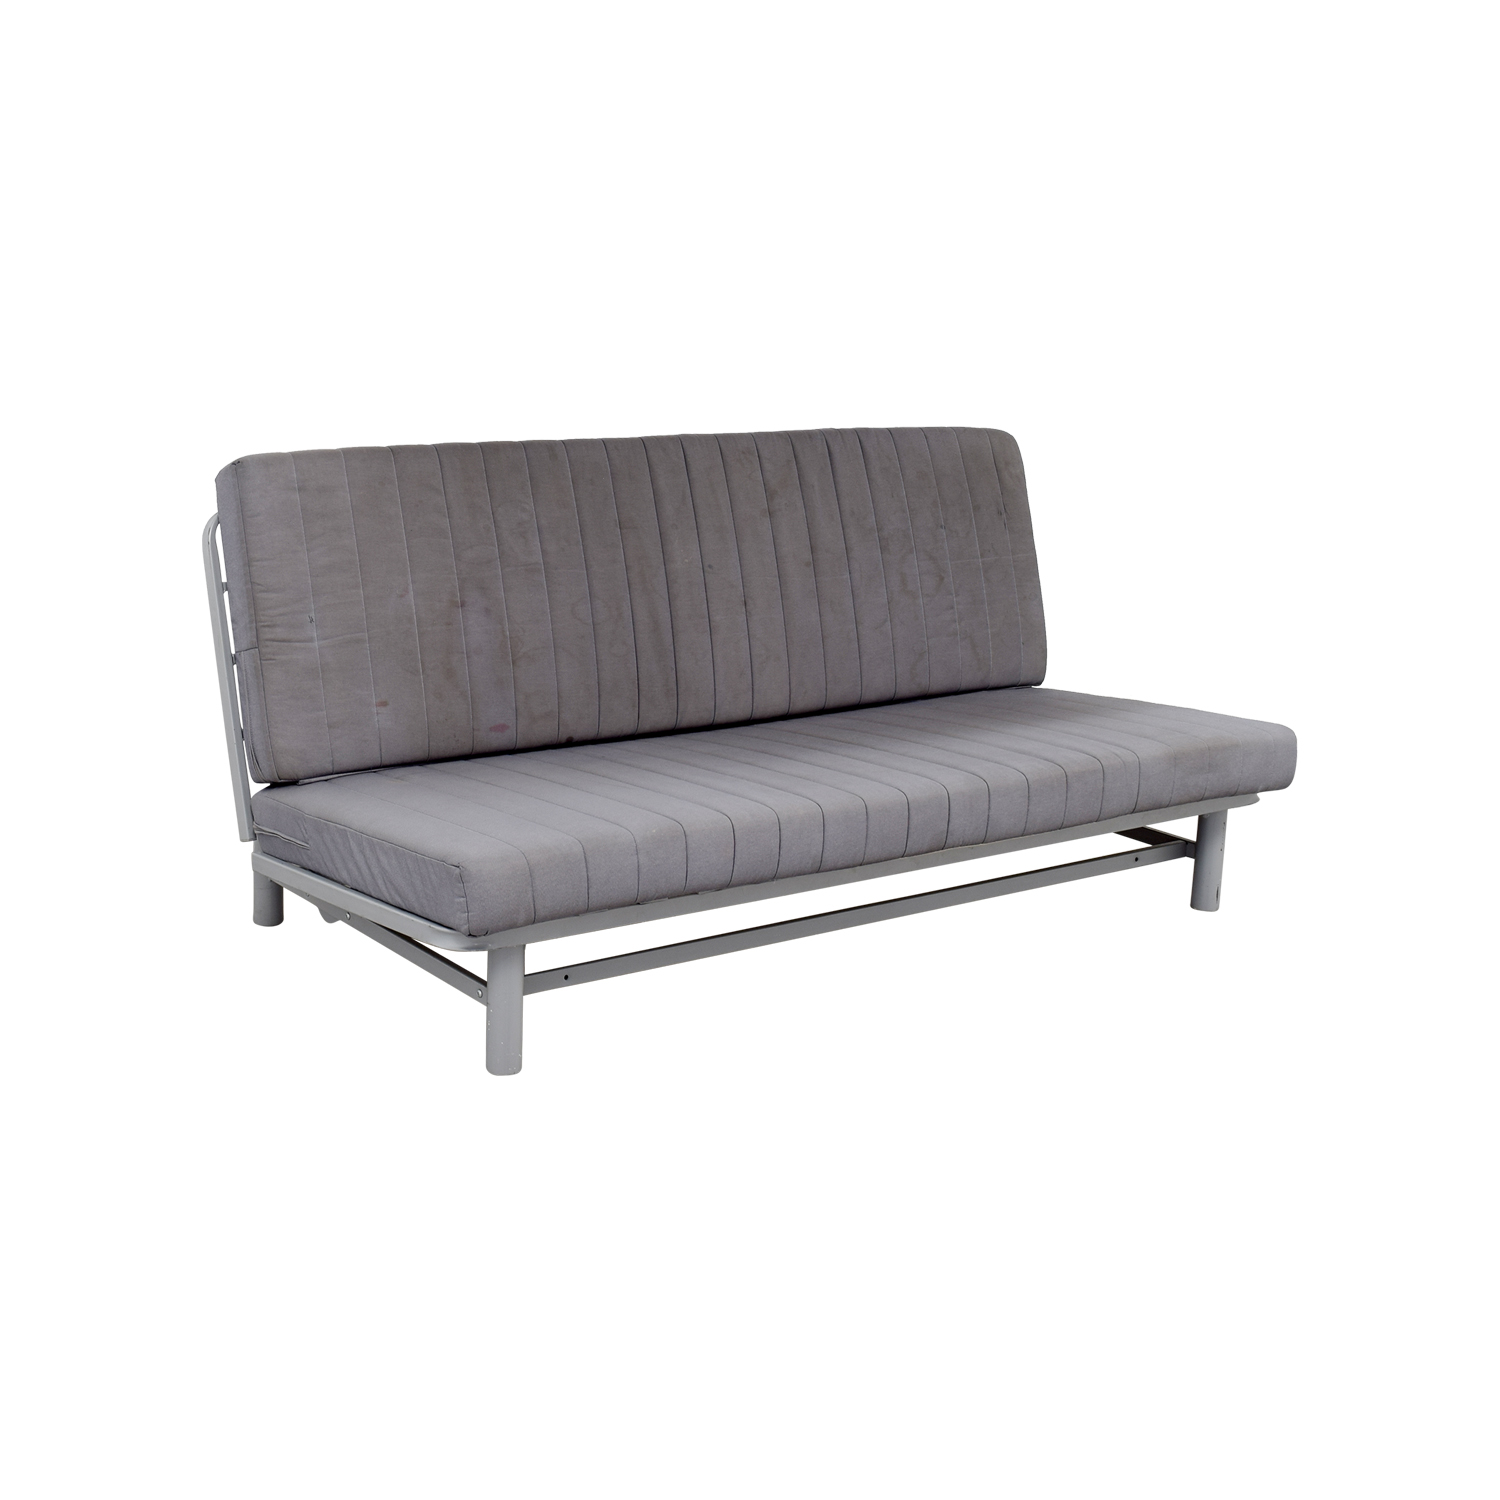 Charmant ... Shop IKEA IKEA Grey Sofa Bed Online ...